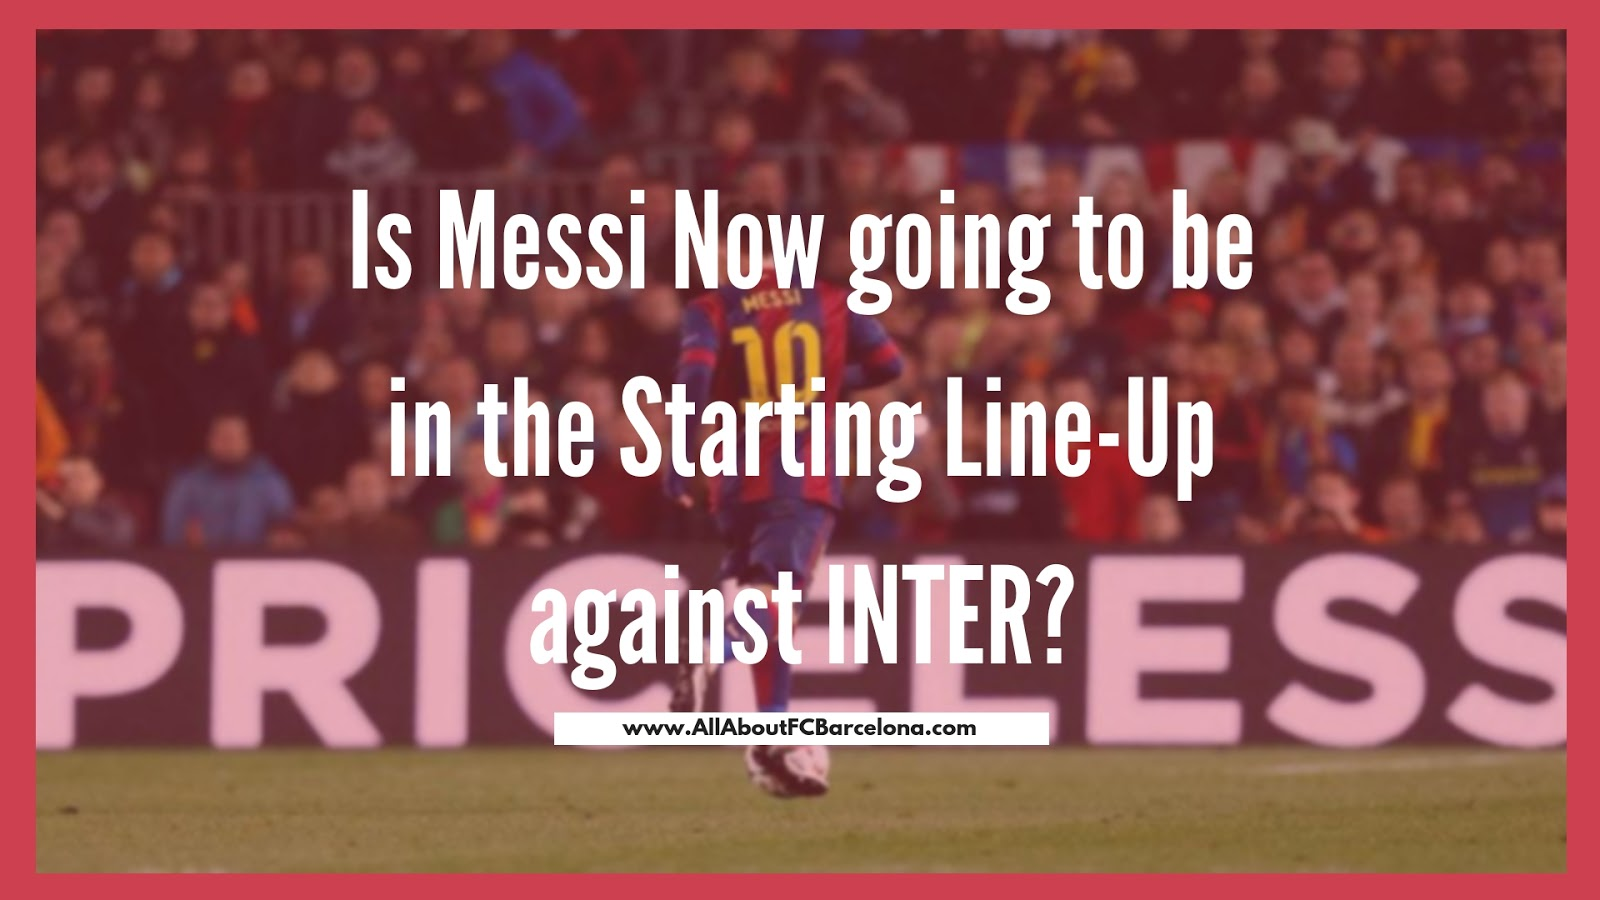 Is Messi Now going to be in the Starting Line-Up against INTER? #messi #Barca